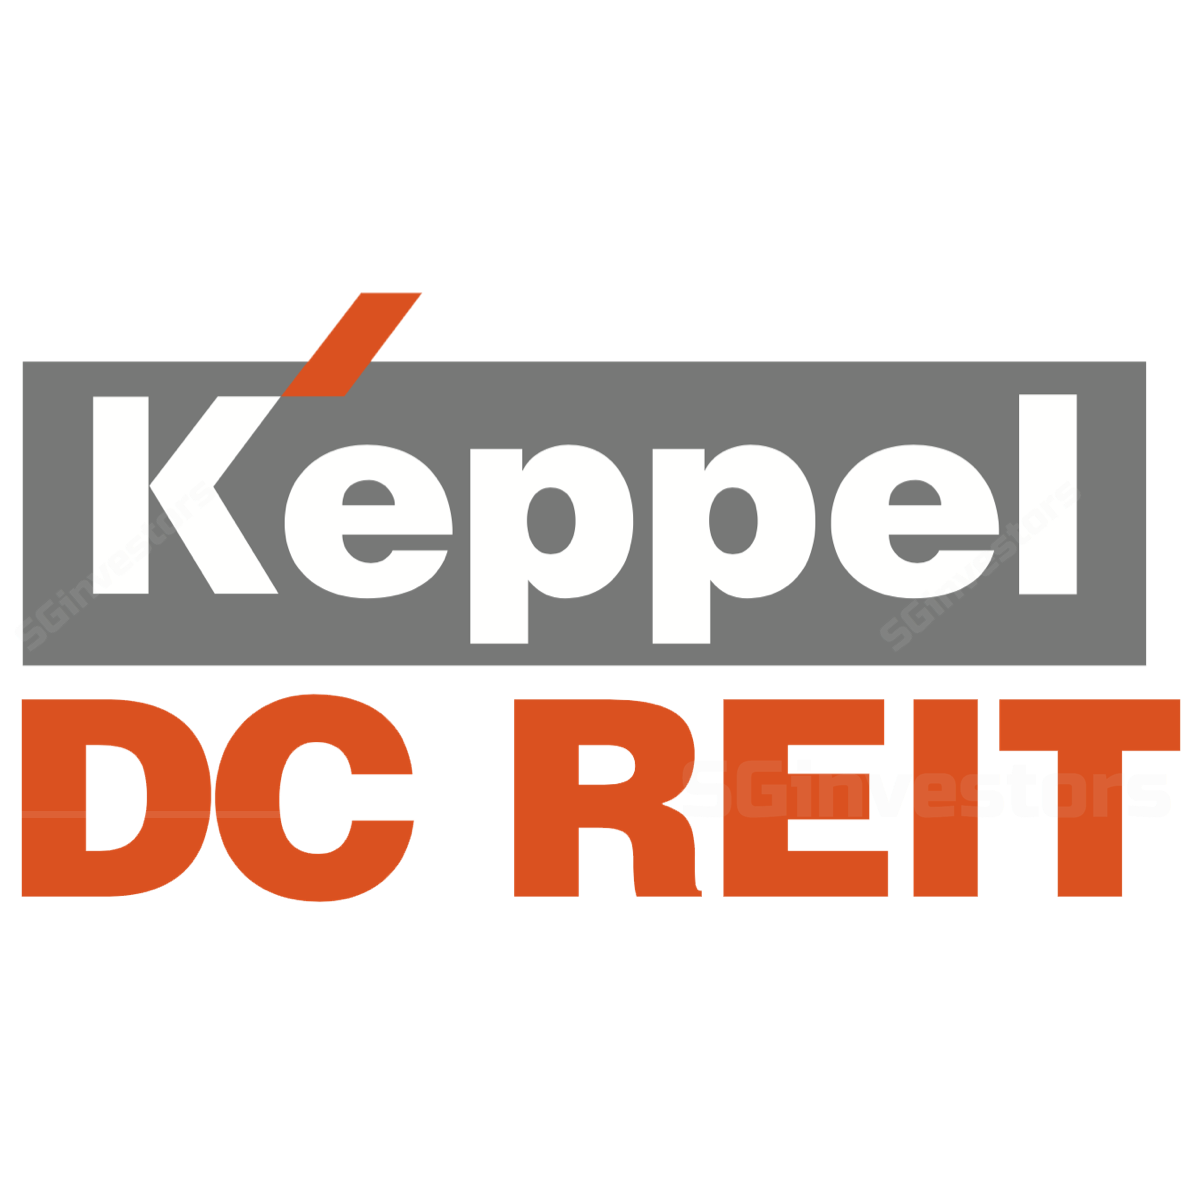 Keppel DC REIT - OCBC Investment 2017-10-17: 3Q17 Results In-line With Expectations